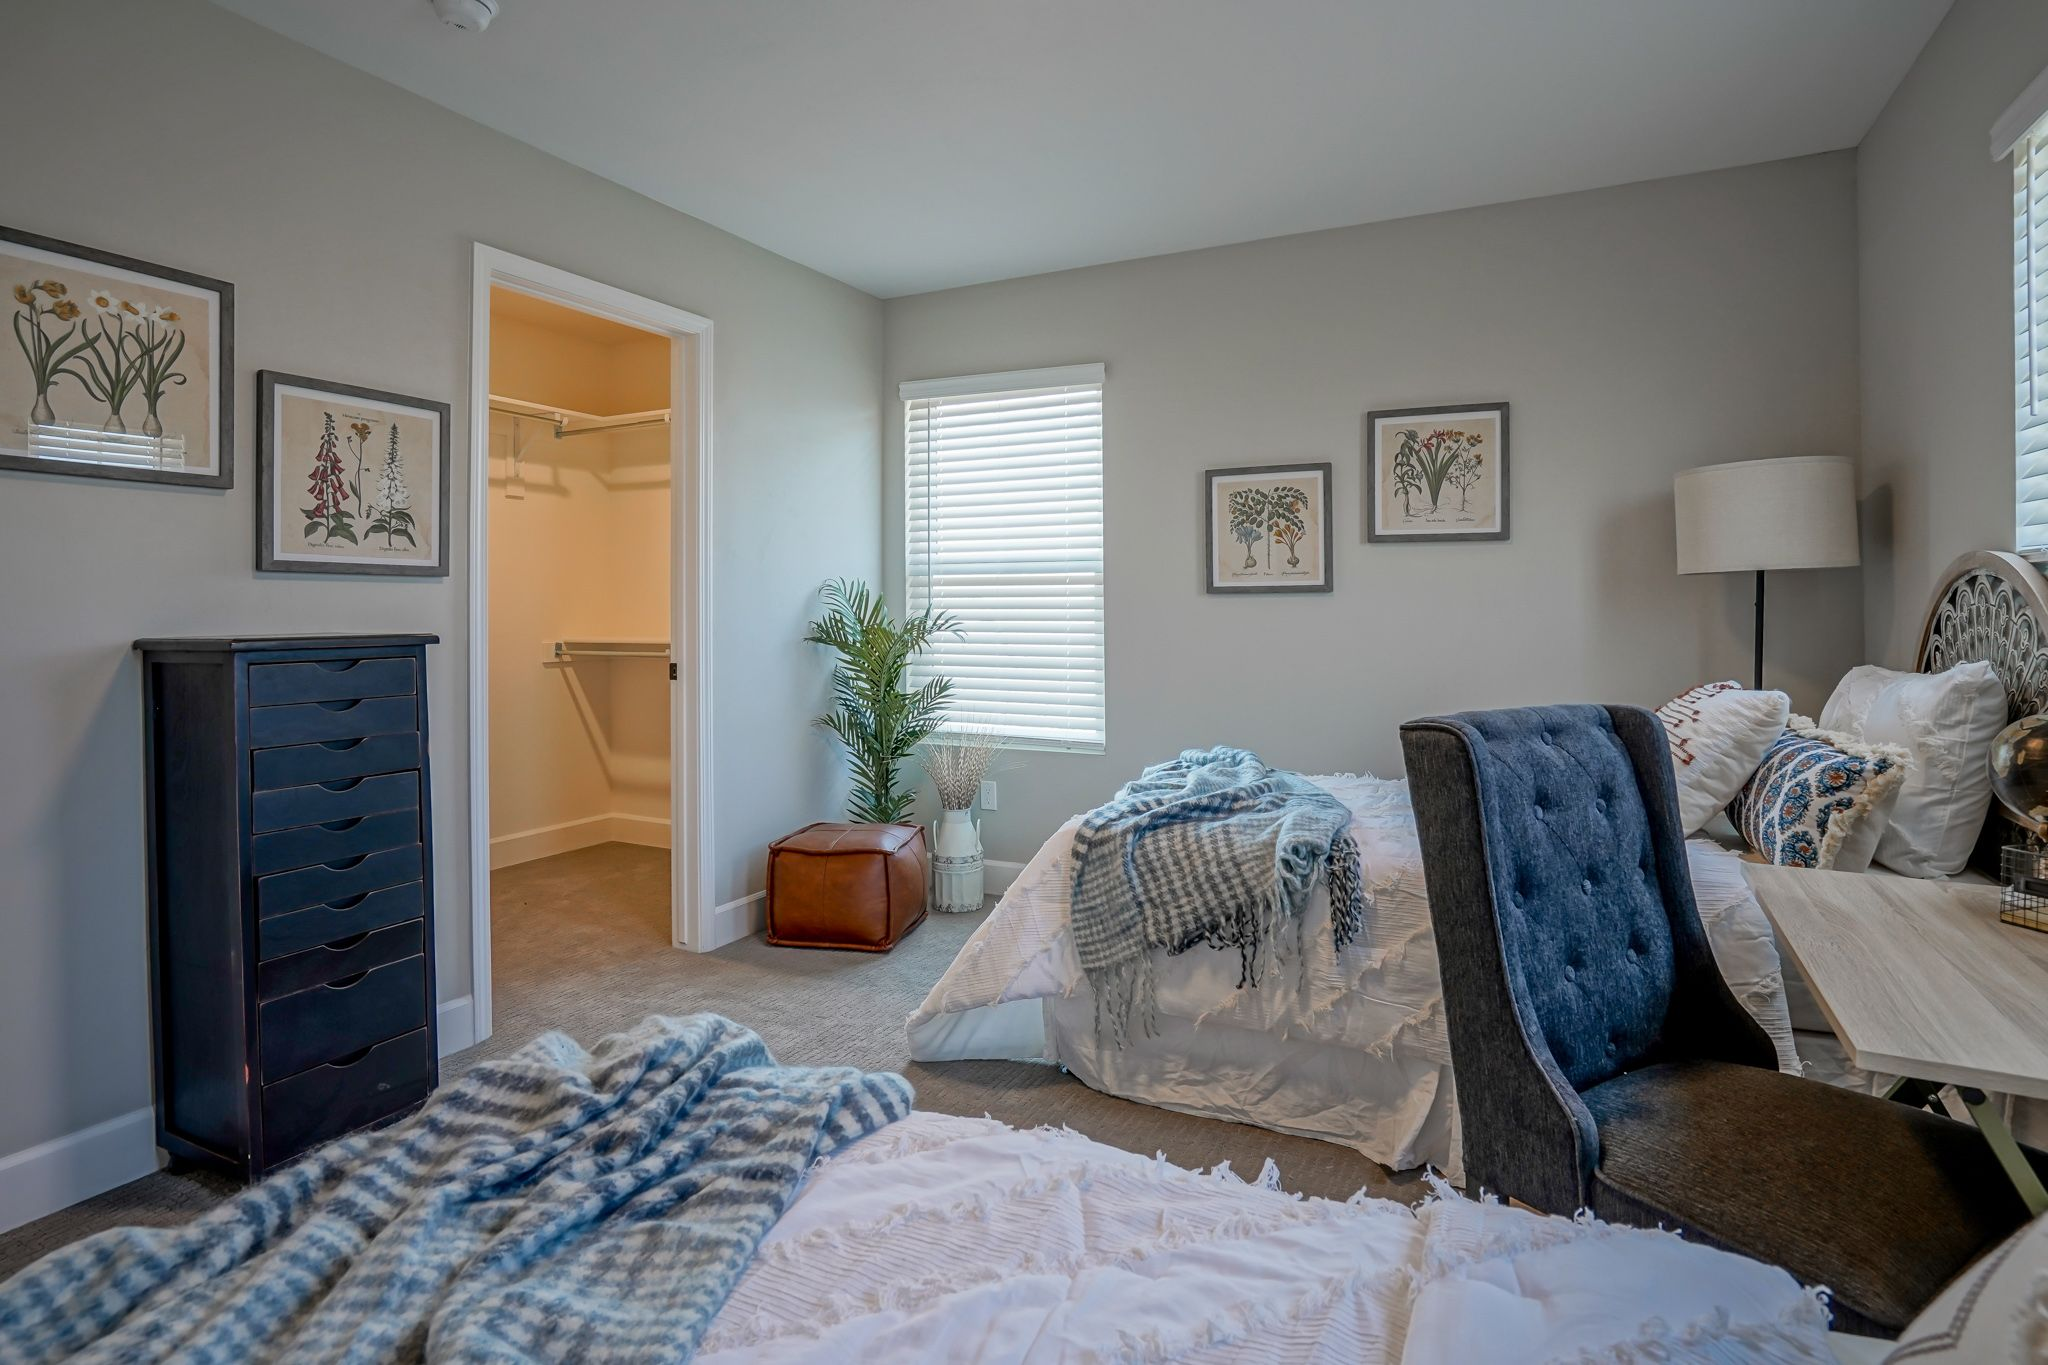 Bedroom featured in The Stout By Abrazo Homes in Albuquerque, NM